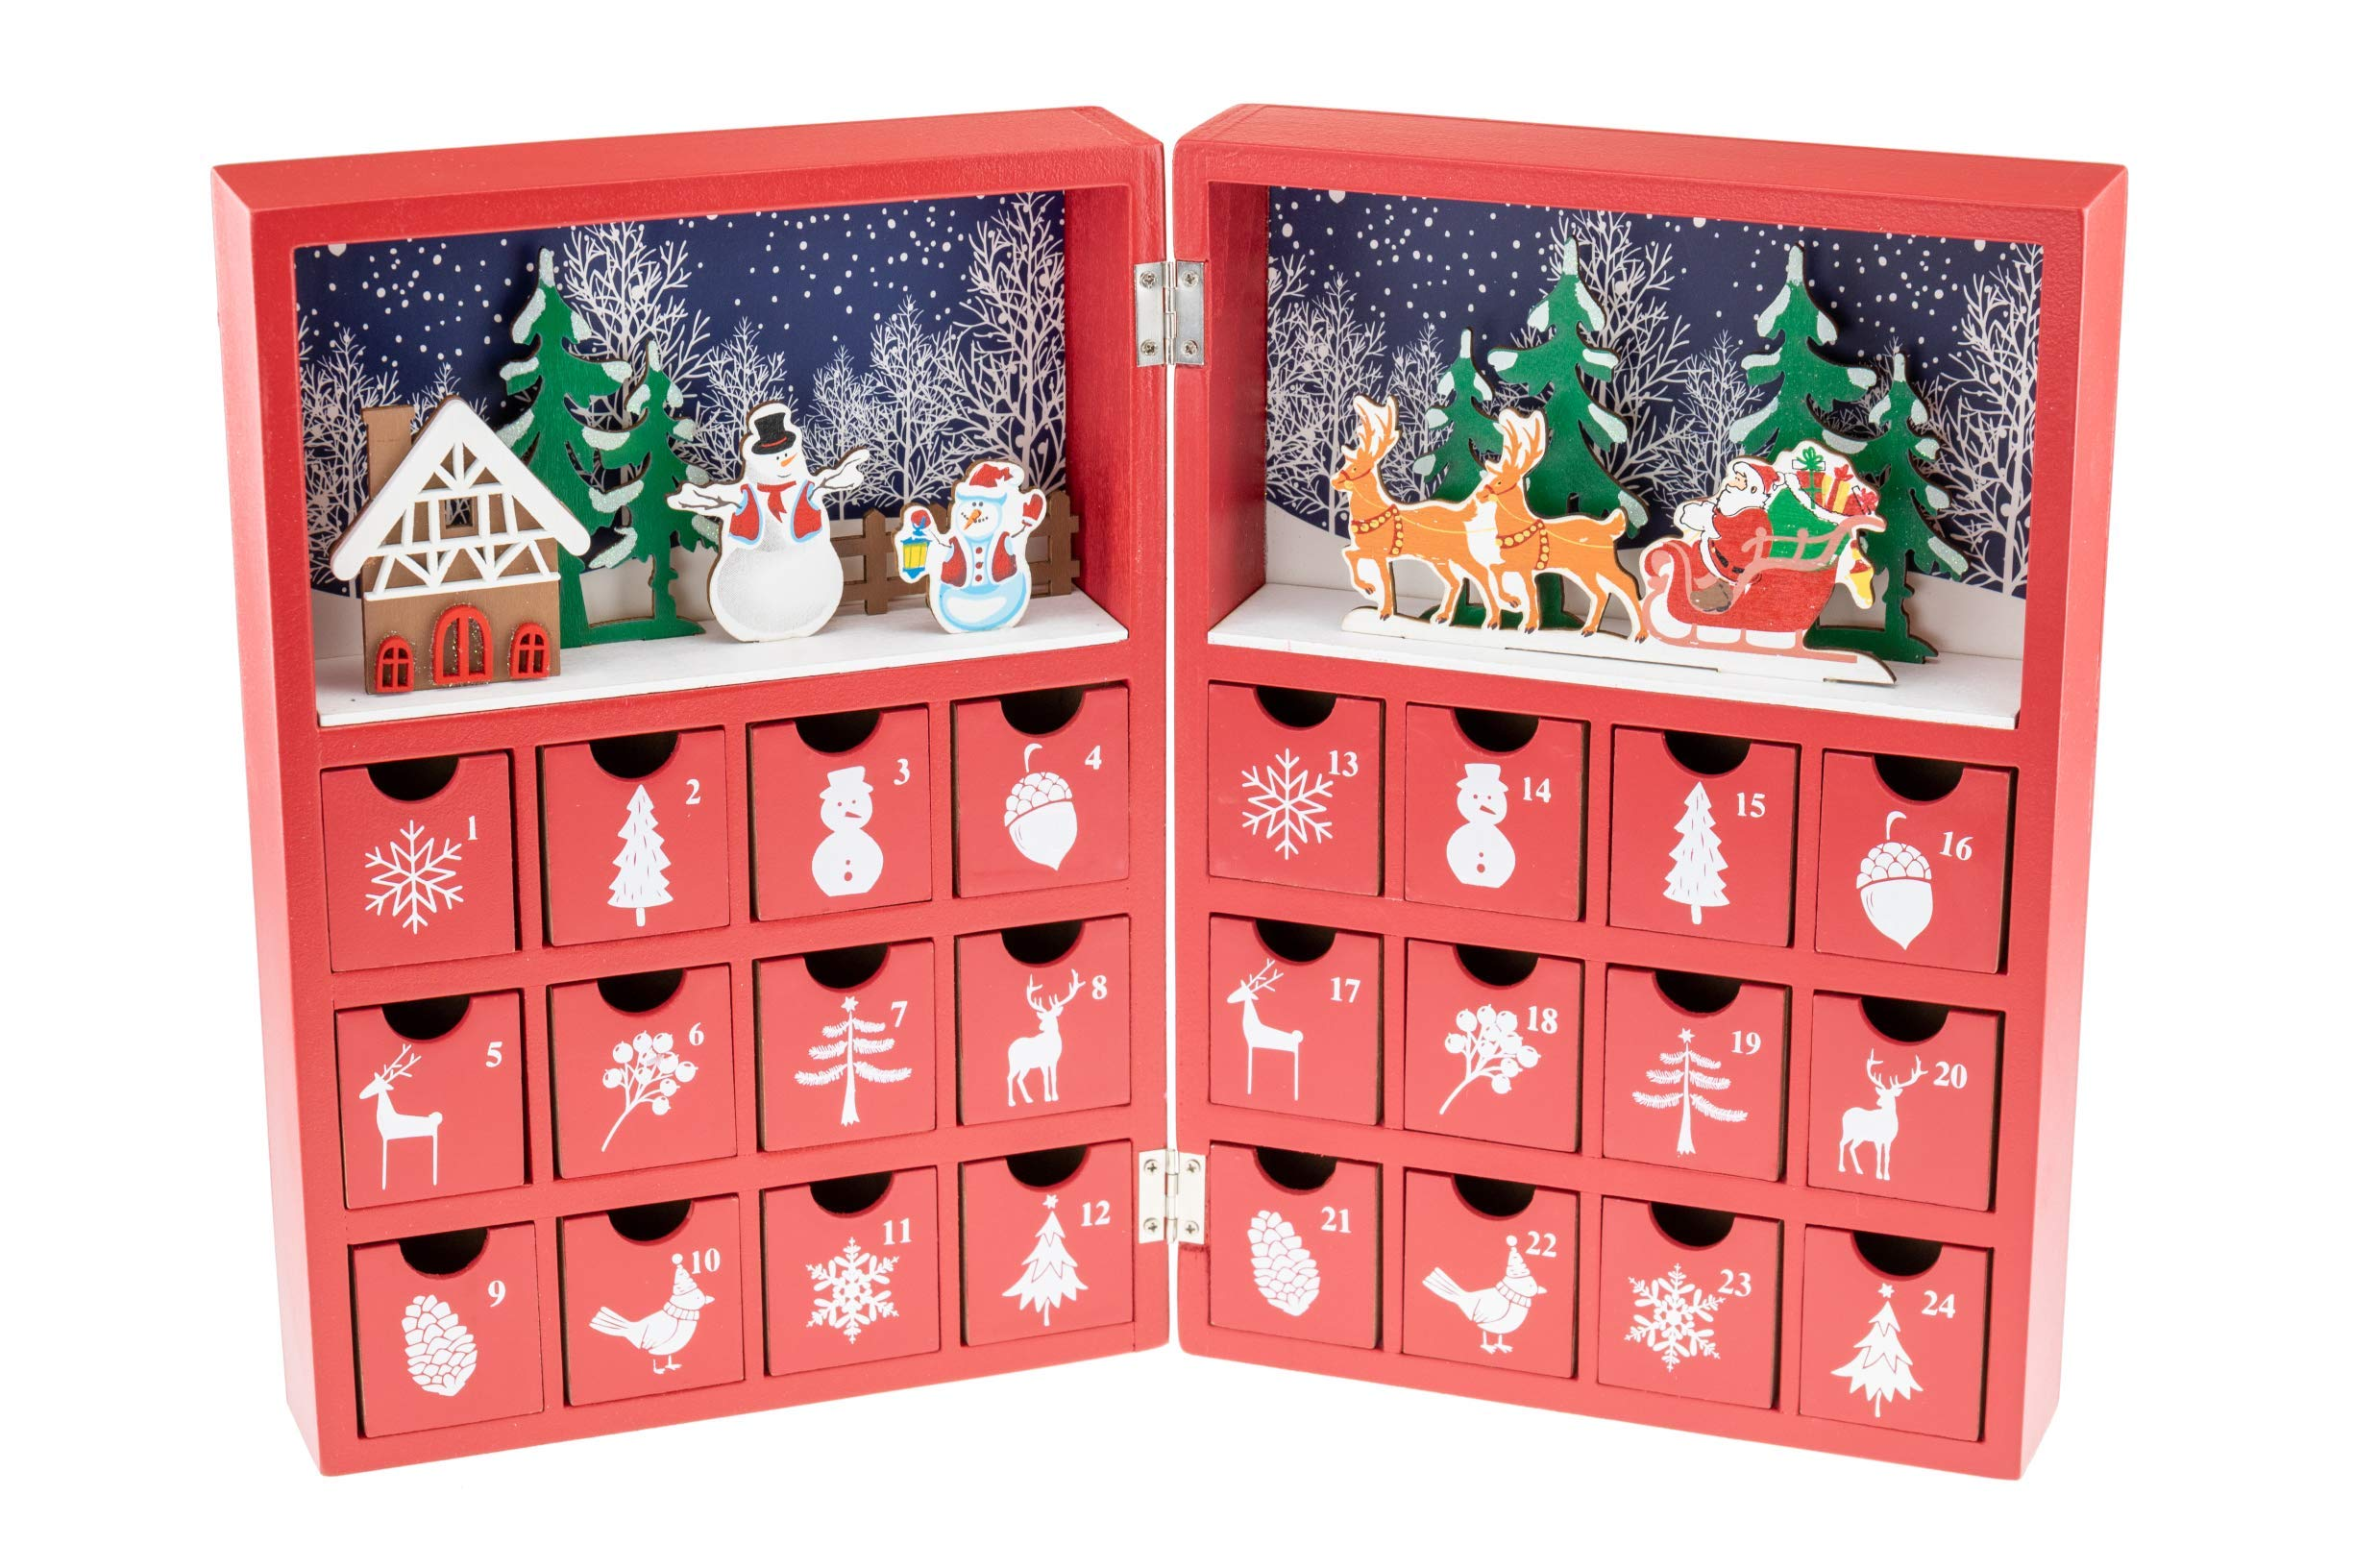 Clever Creations Christmas Book Advent Calendar - Colorful Christmas Scene with Santa - Premium Christmas Decor - Cute Holiday Decorations - Solid Wood Construction - 8.25 in x 3.5 in x 12 in